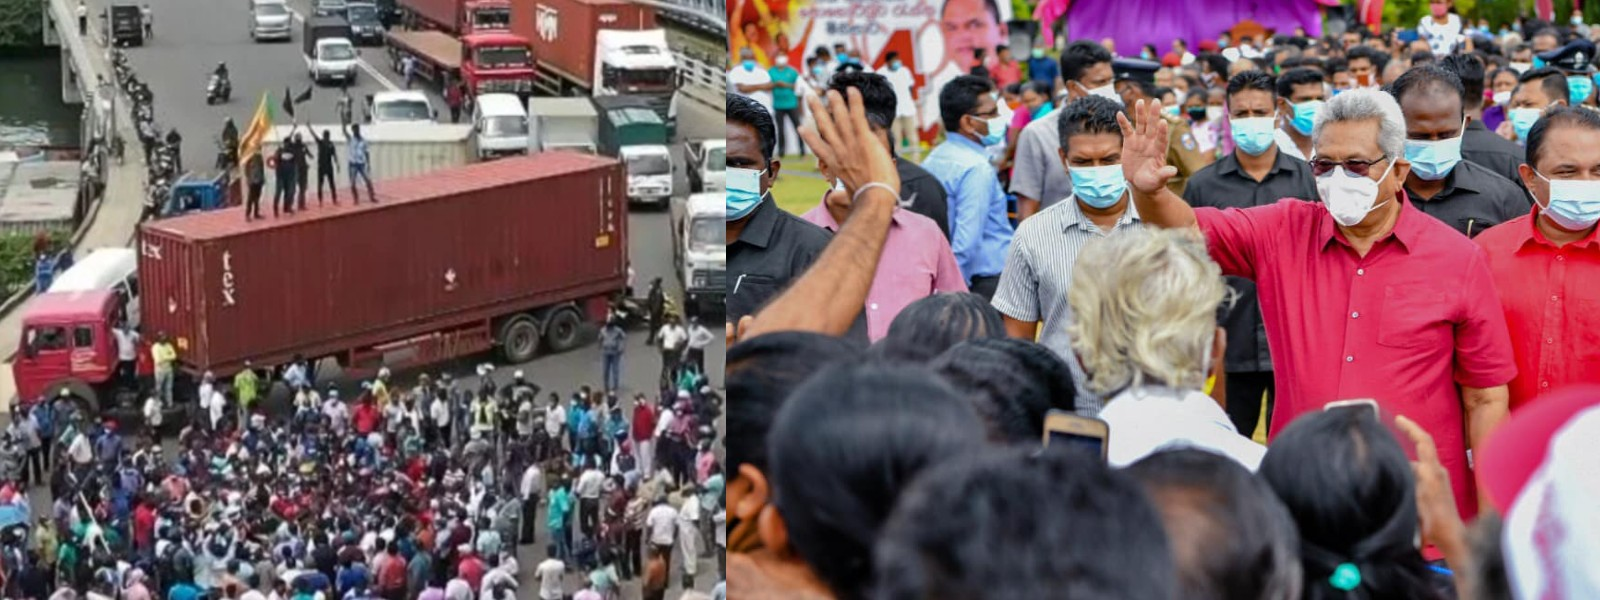 President unfazed by Anti-India protests at Colombo Port; Protesters barred from occupying buildings